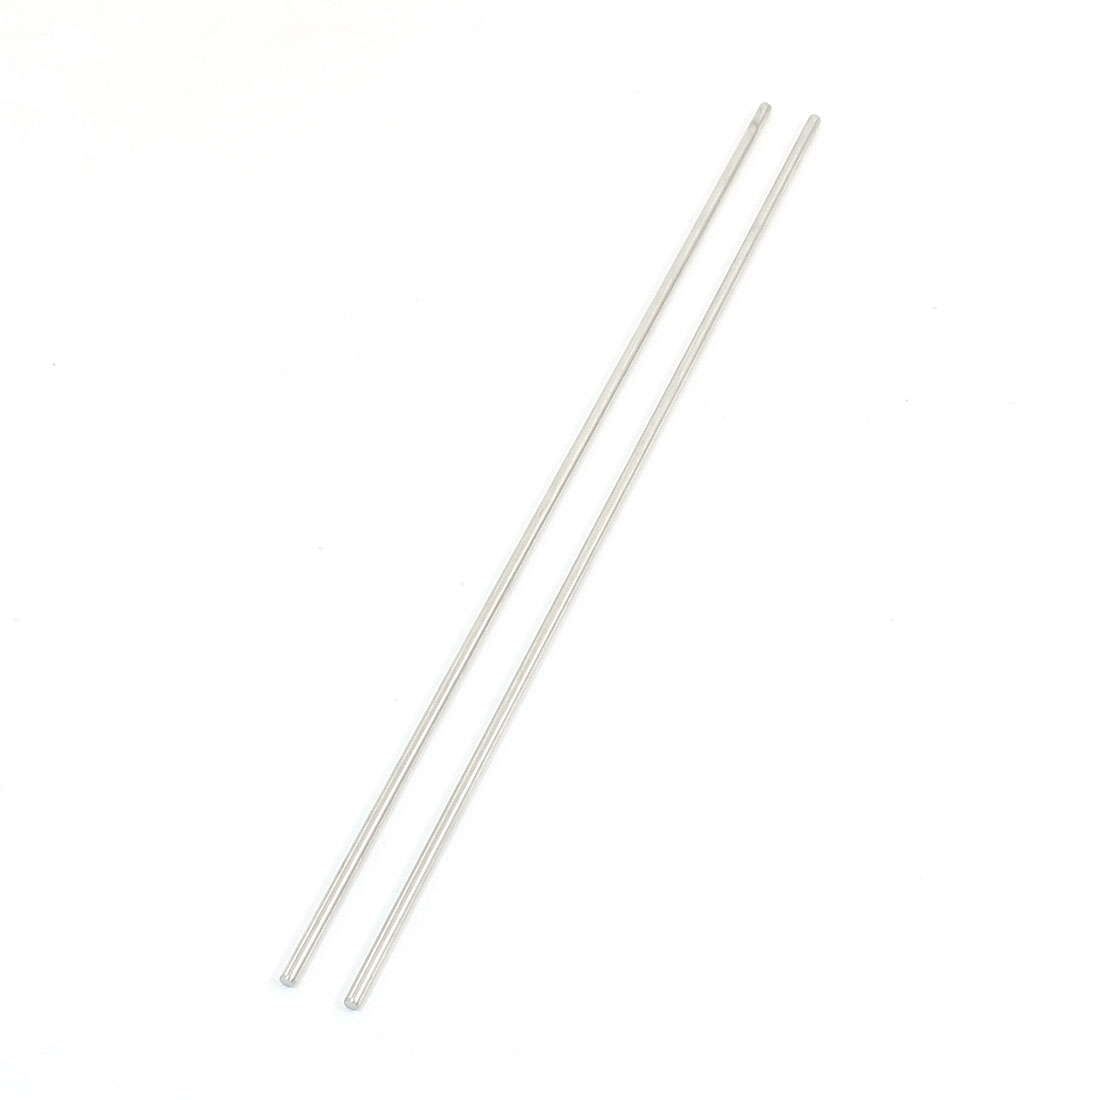 "2Pcs 2.5mm Diameter Stainless Steel Motion Axle Circular Round Rod Bar 7.9"" Long"